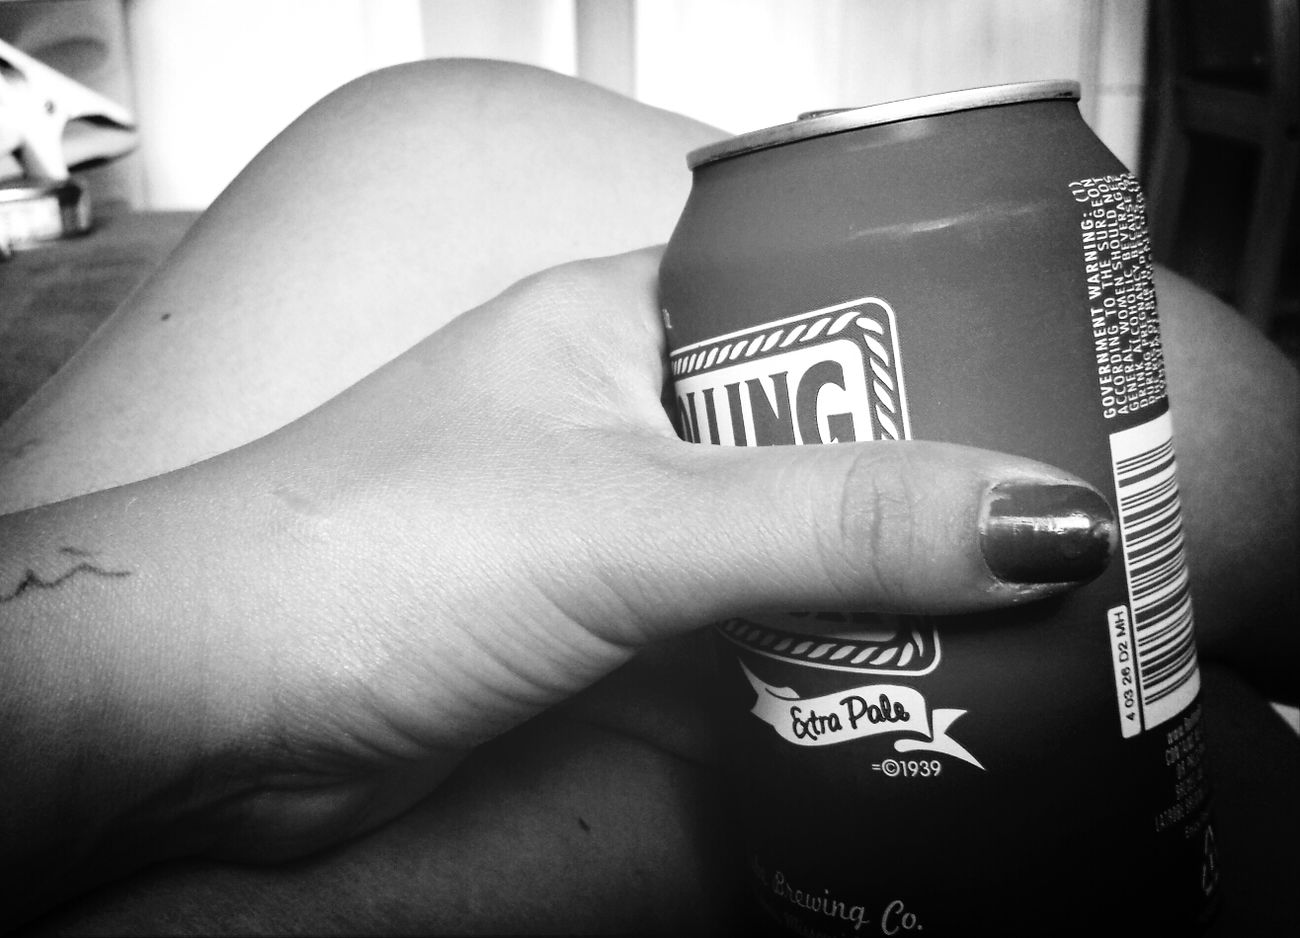 Being able to relax after a long day of work RePicture Femininity Rolling Rock Summer Research Black And White